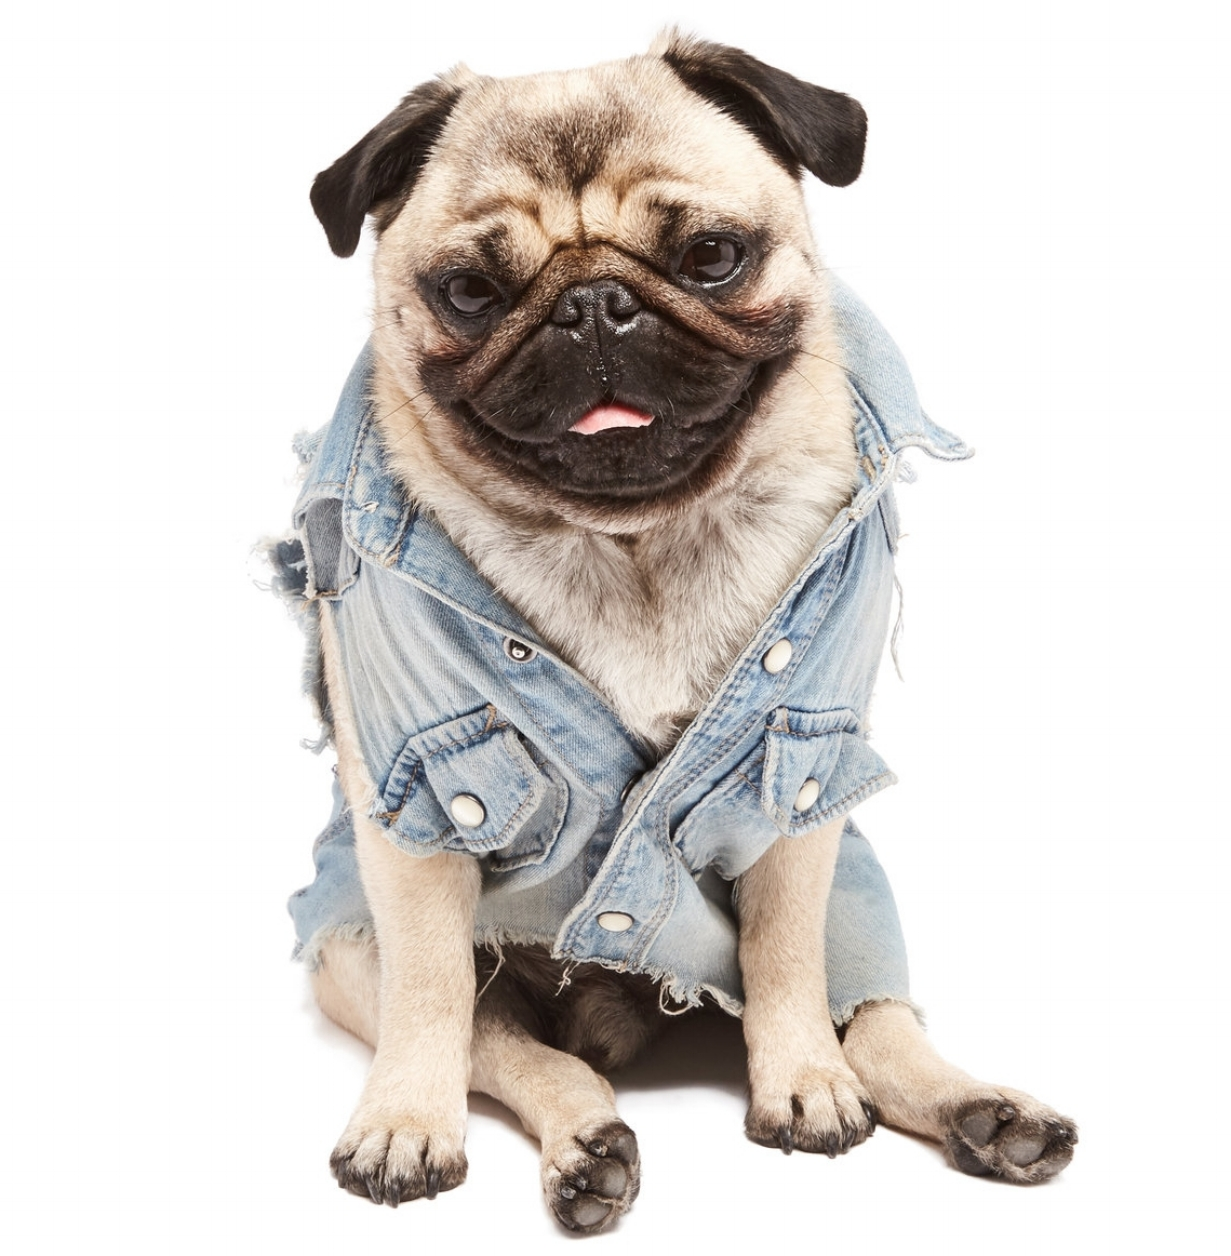 Helmut the Pug - About.jpg